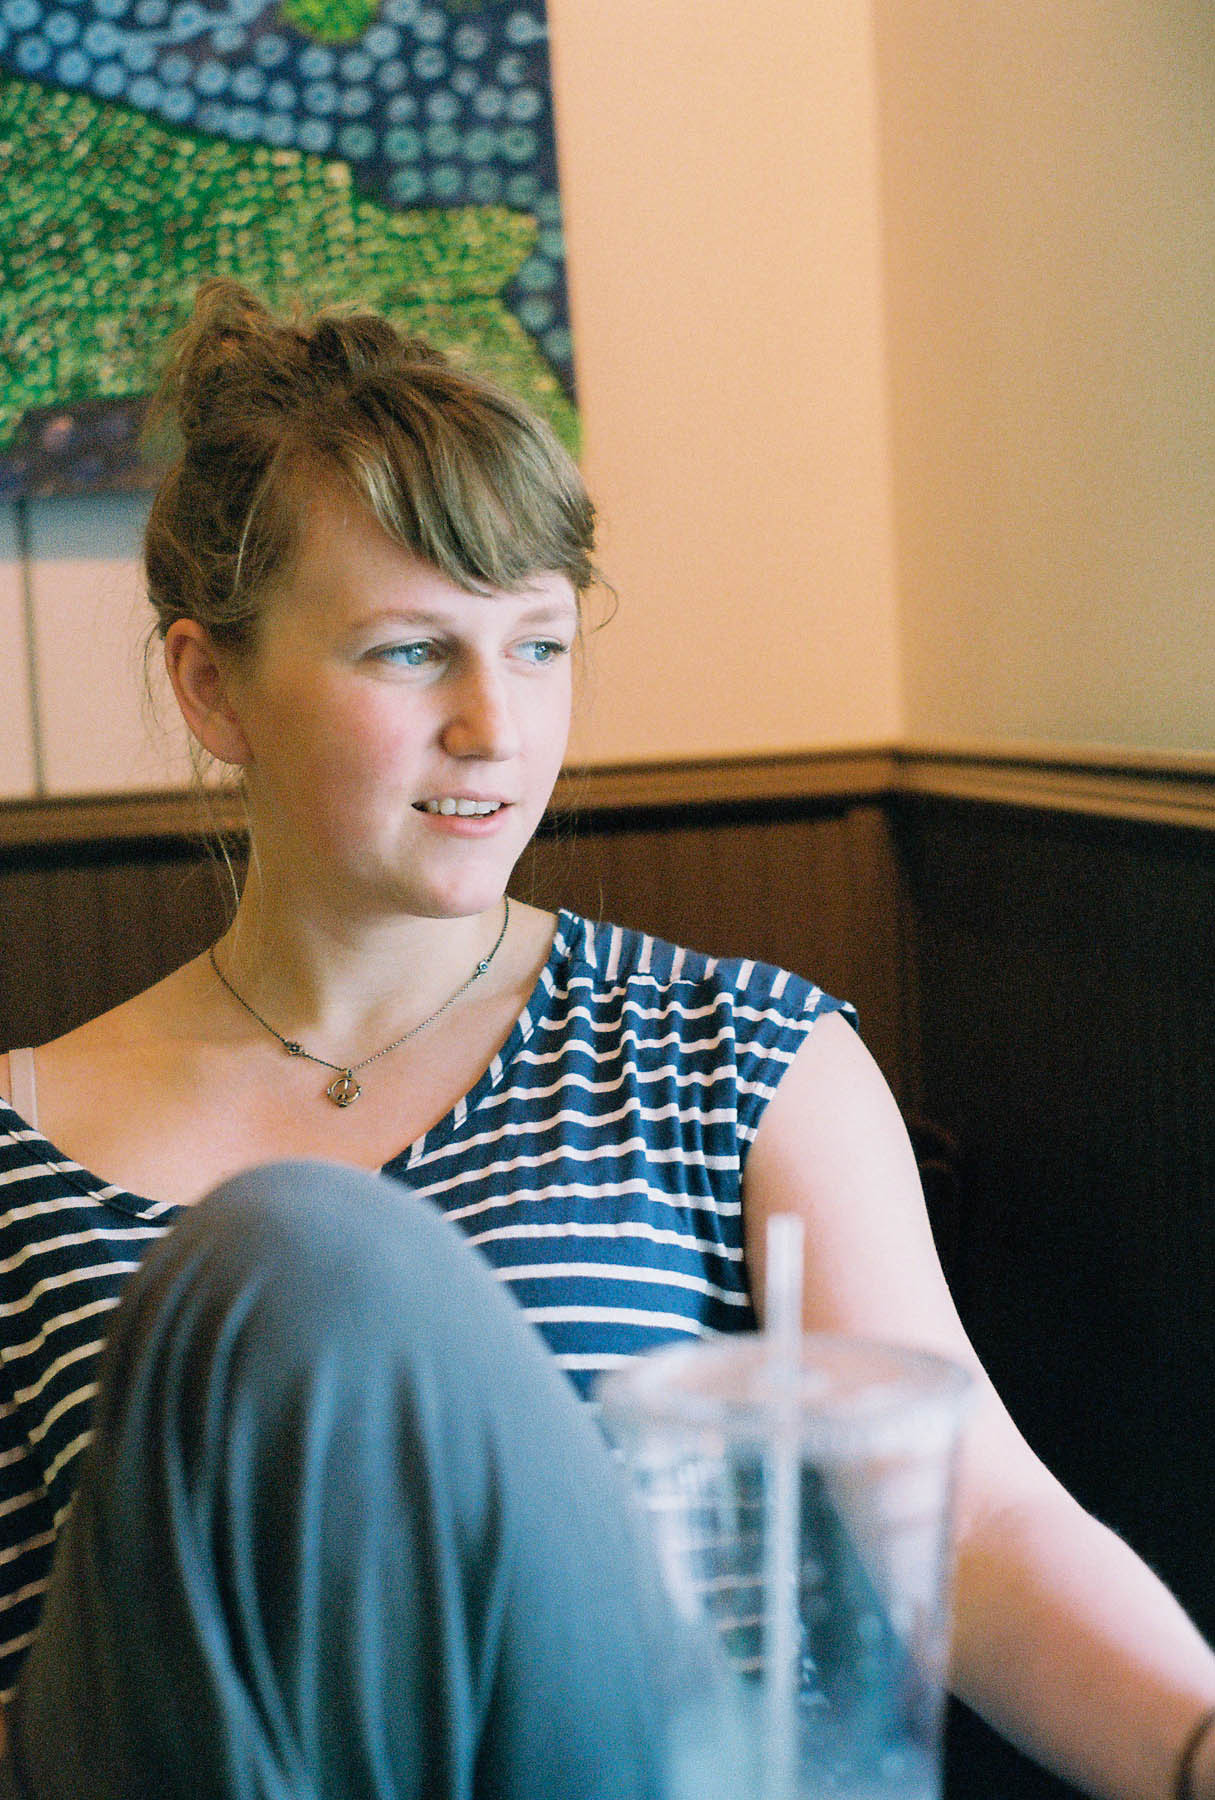 anna as we talked about life at a coffee shop